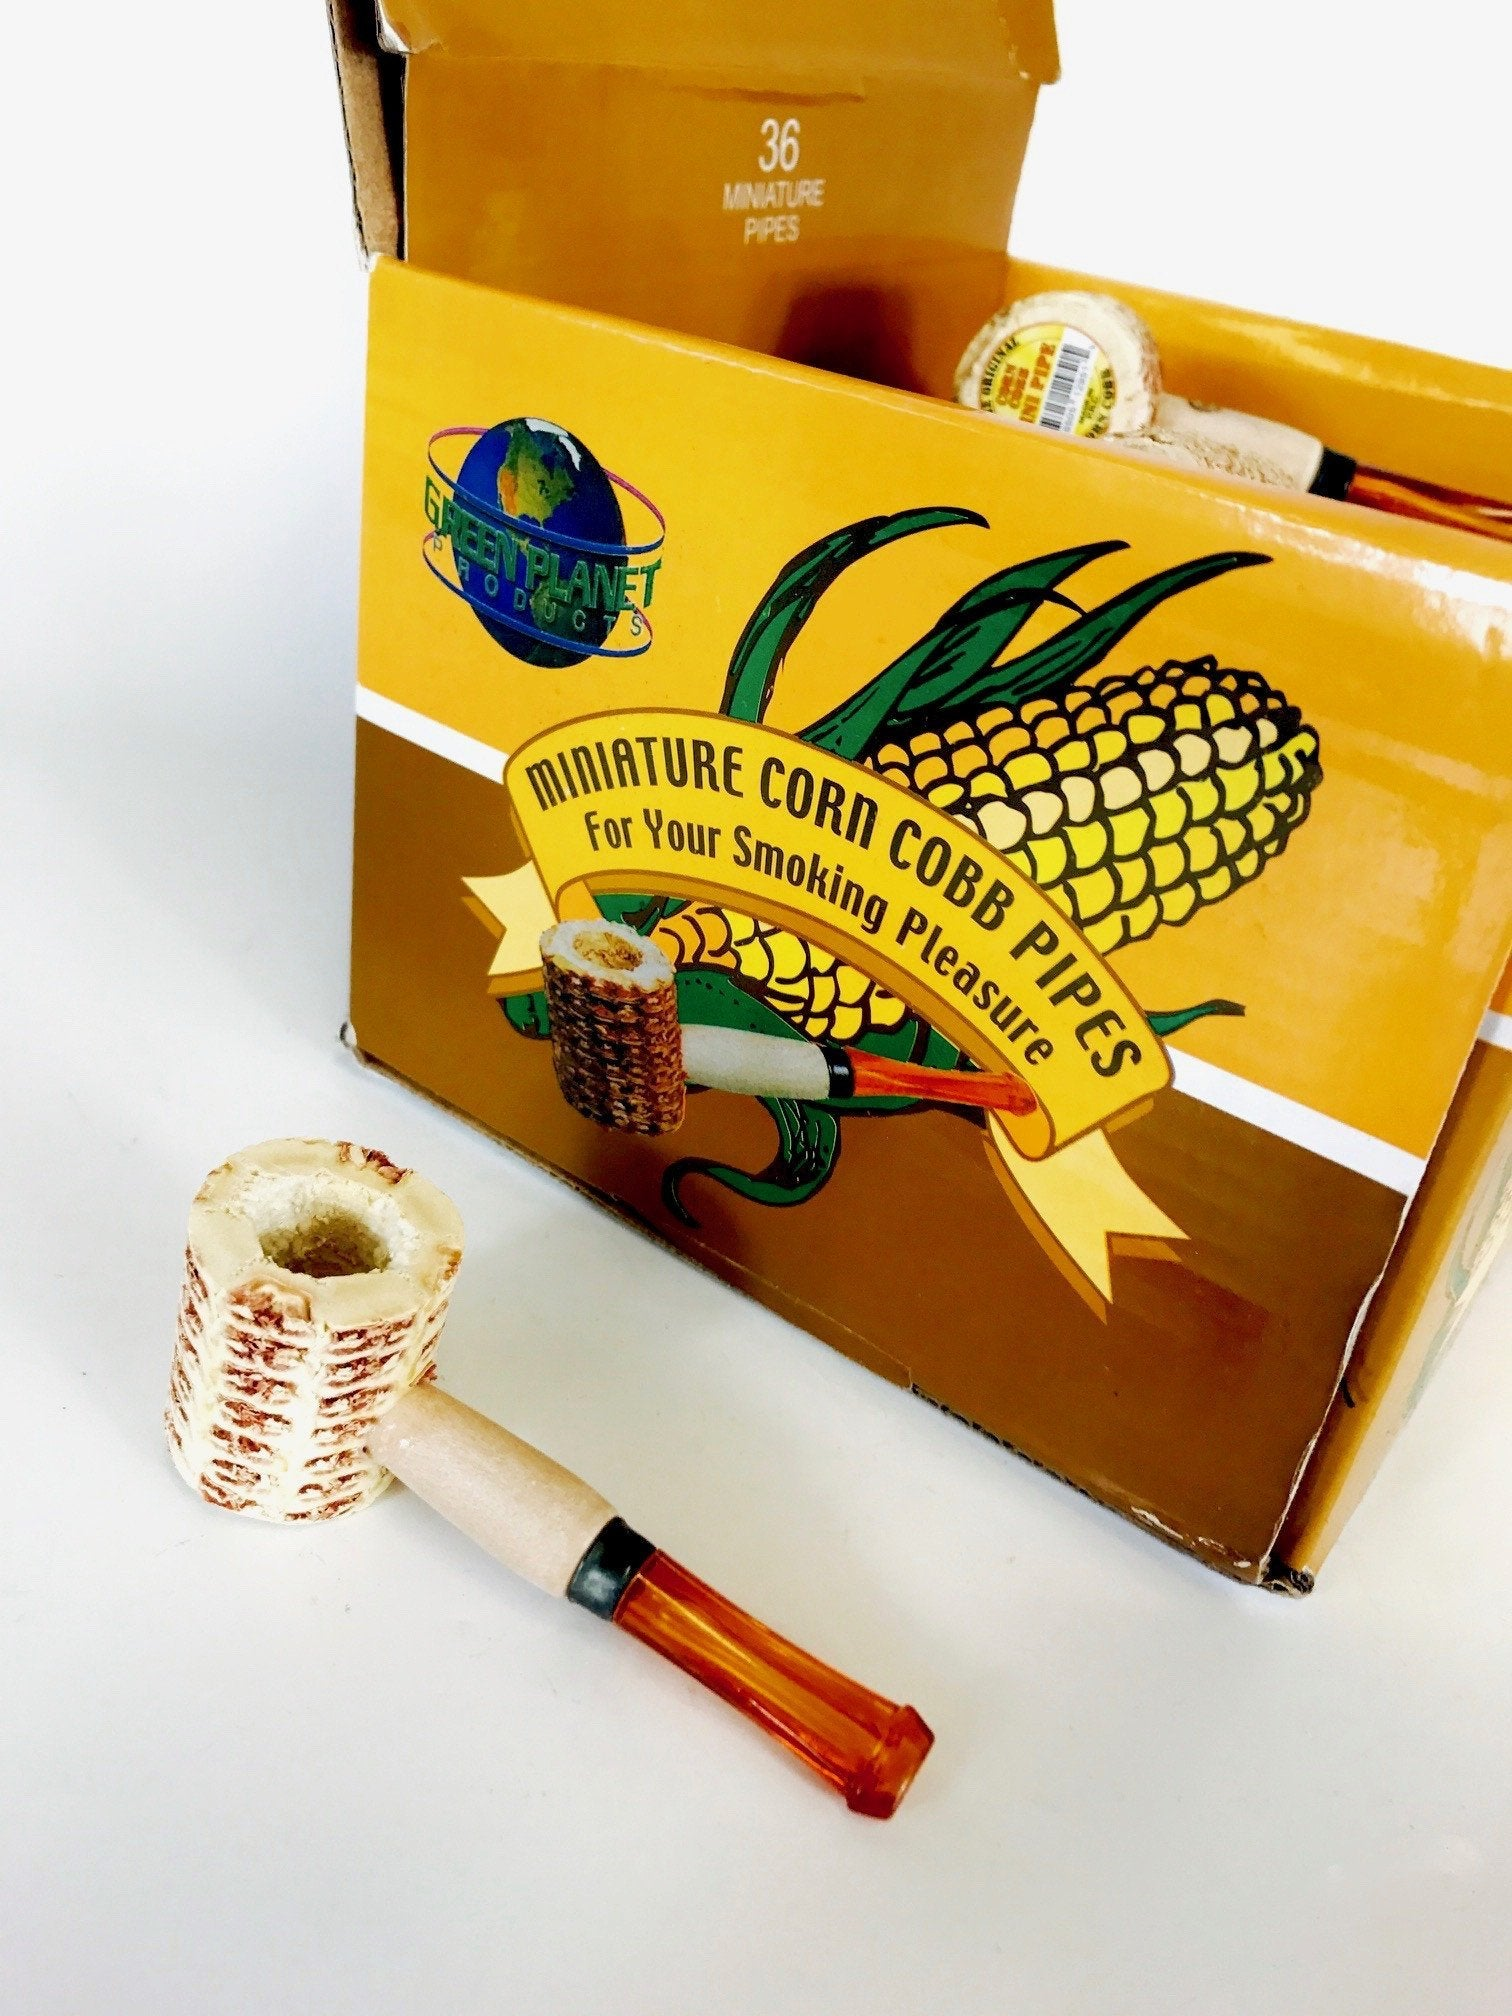 Miniature Corn Cobb Pipe